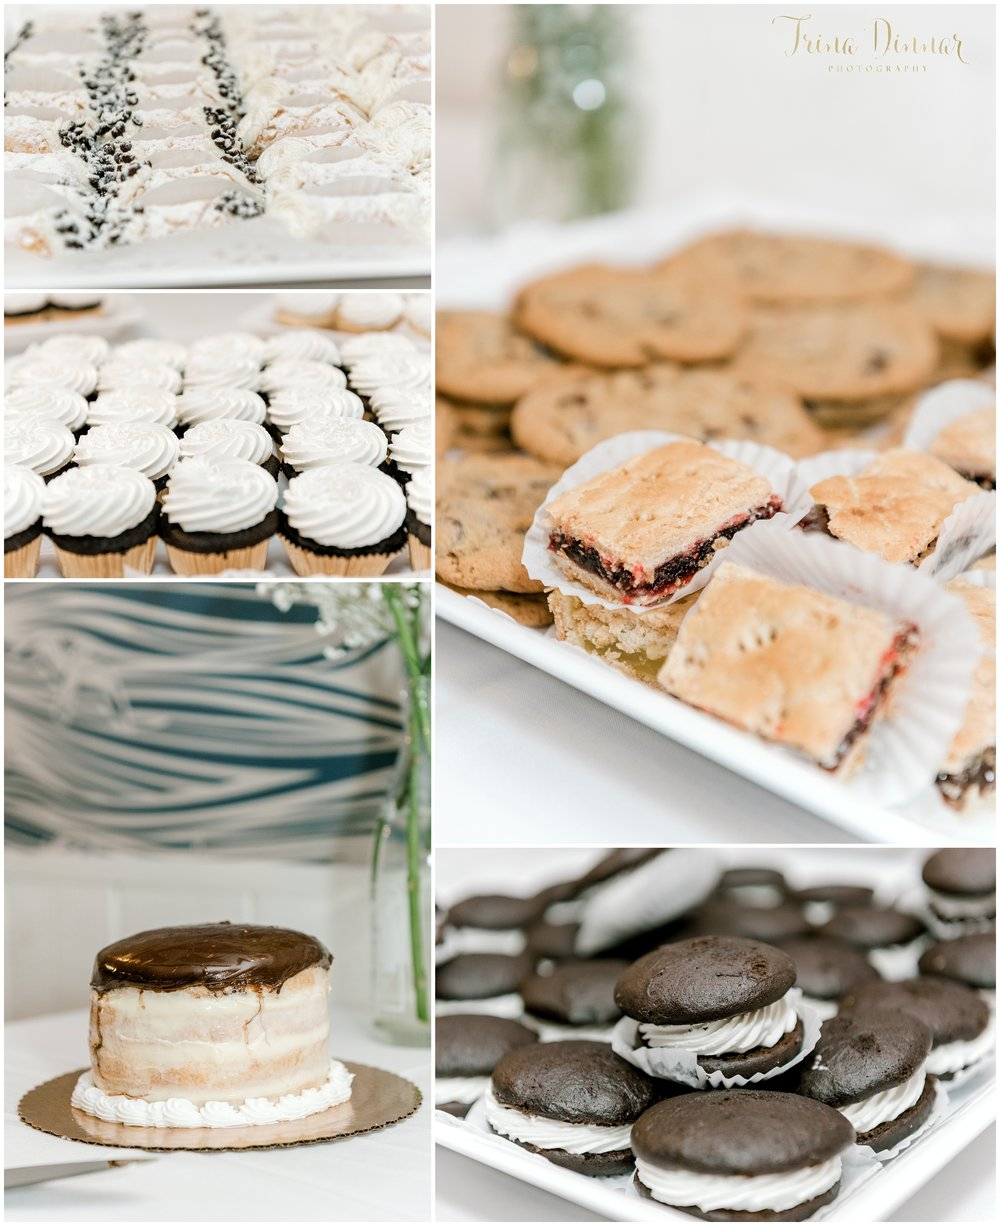 Cake and Desserts at reception